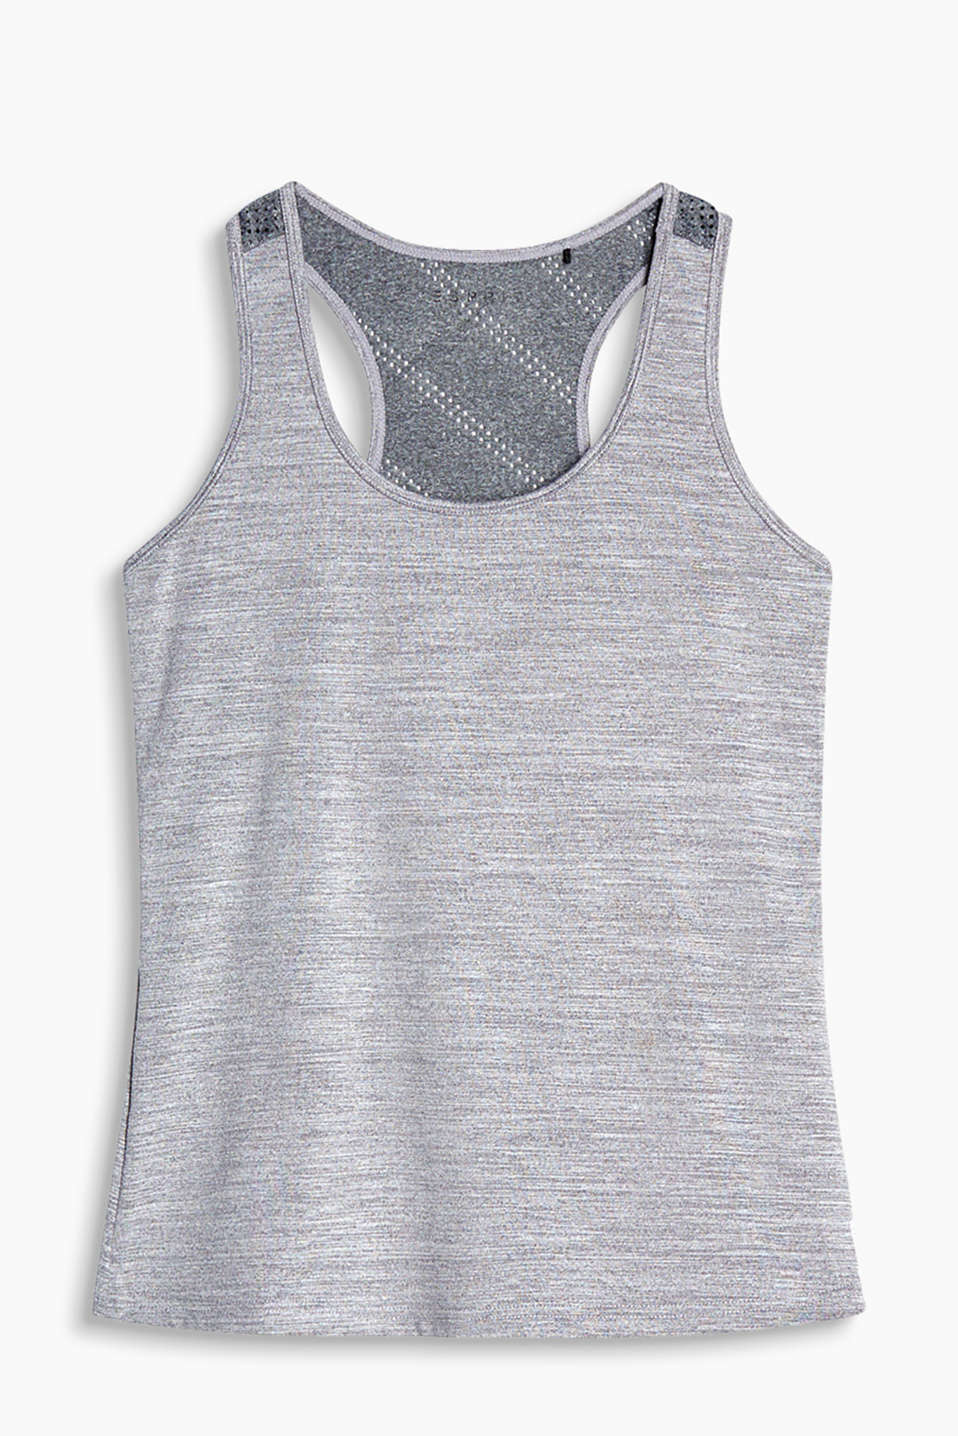 Melange vest with a racer back and perforated pattern, E-DRY